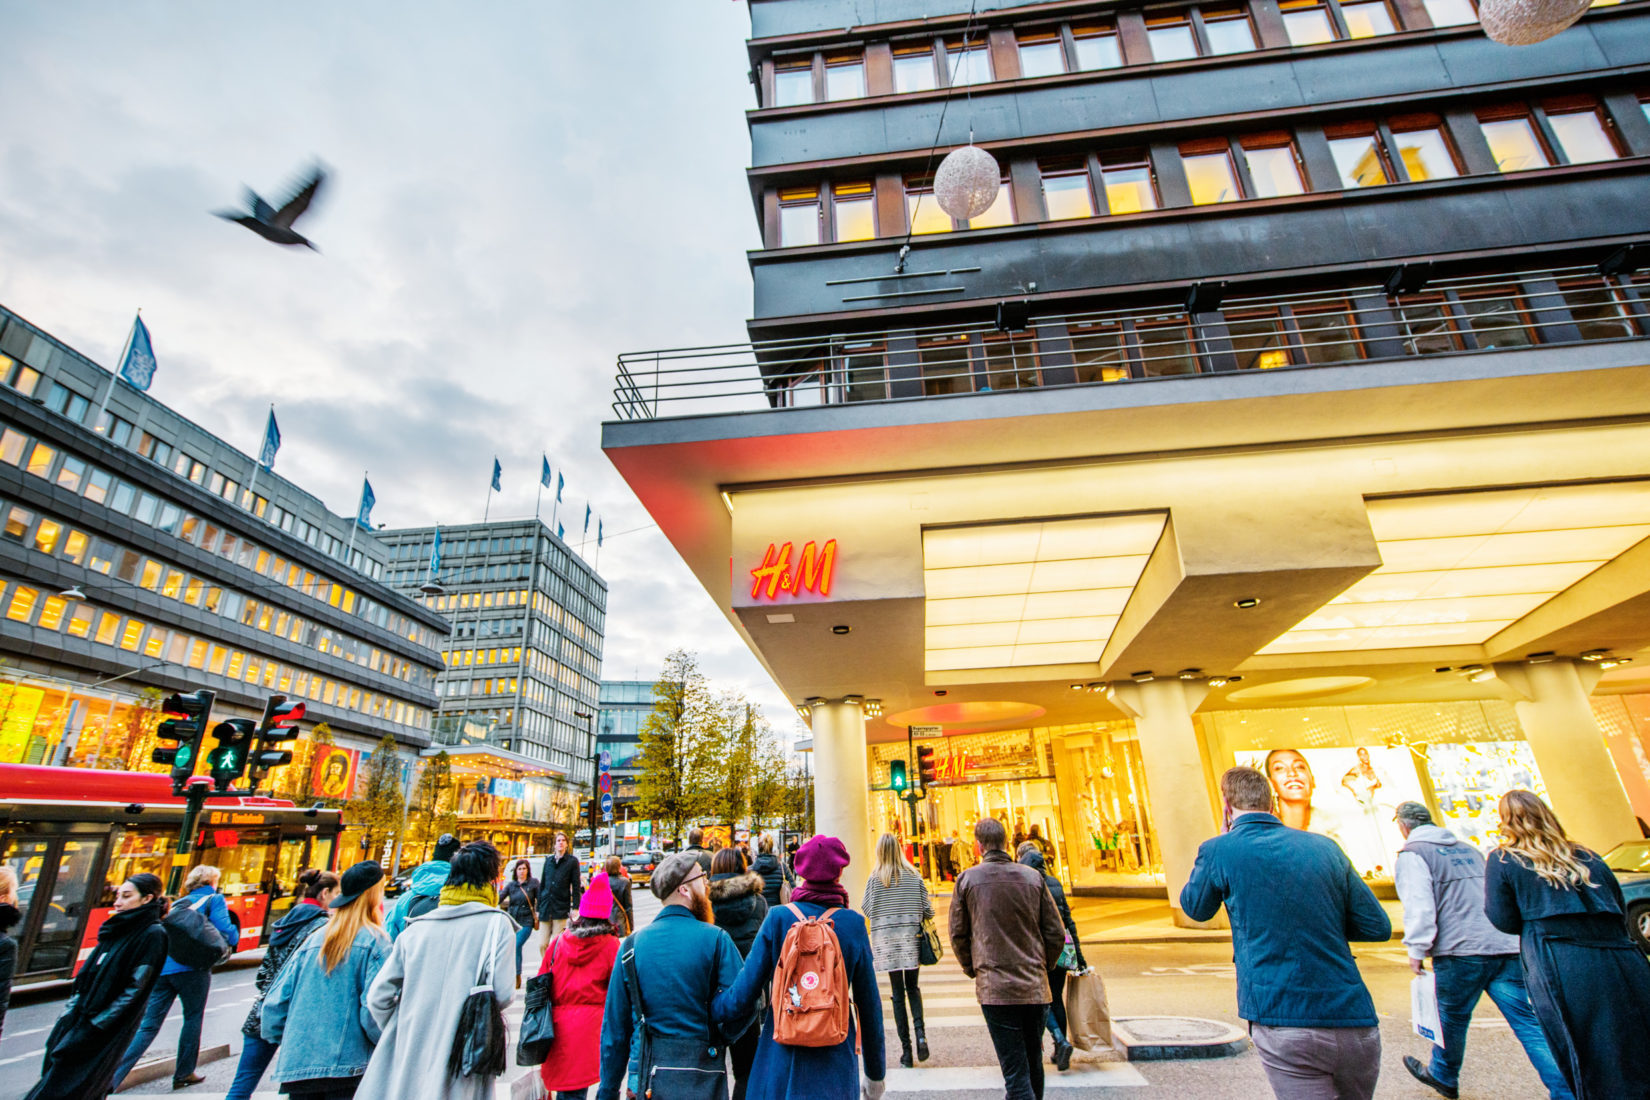 A crowd walking on a shopping street passing an H&M store. The sky is grey and a pigeon is flying right across.